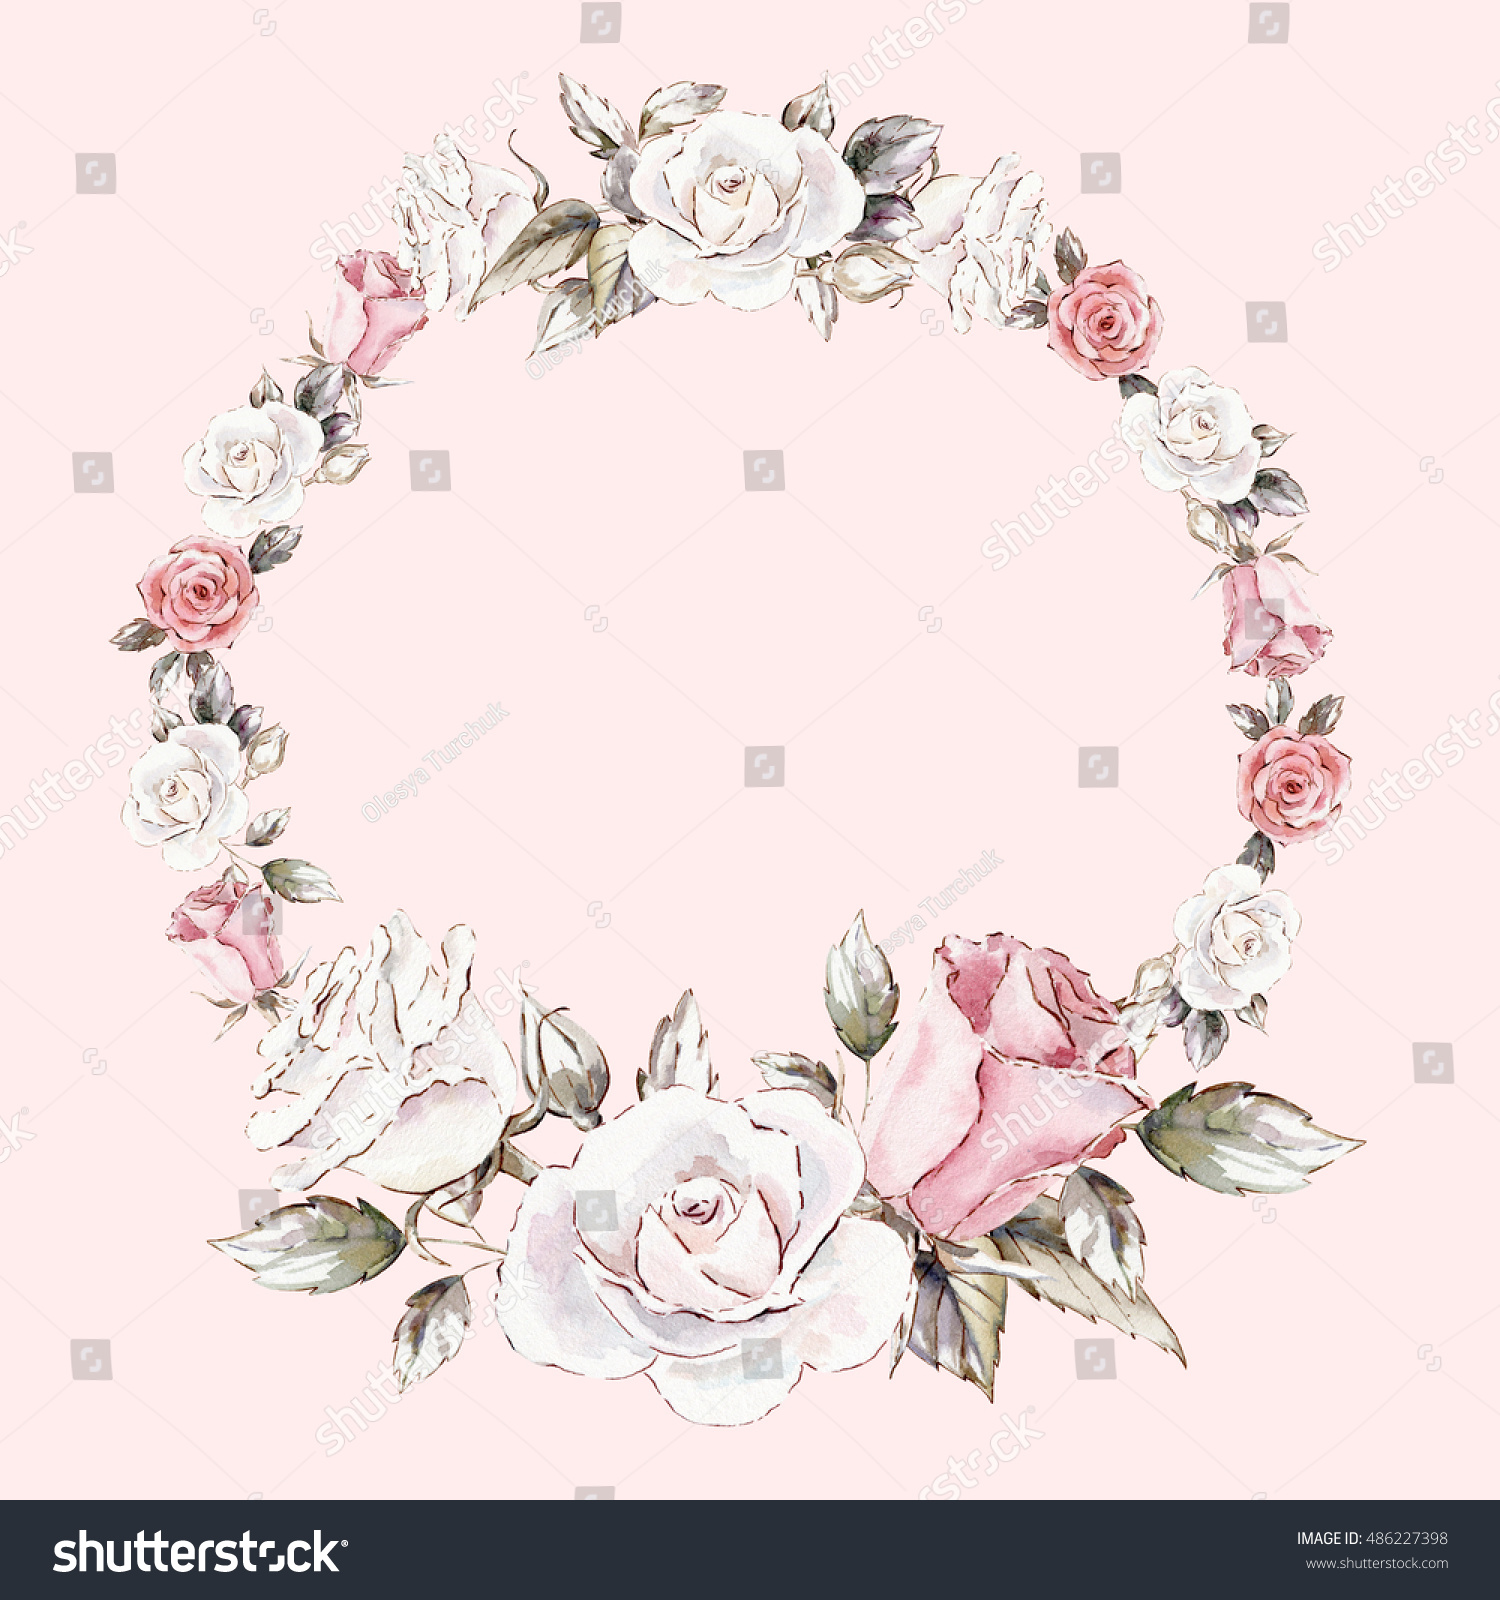 Watercolor hand drawn flower wreath for design artistic isolated - Beautiful Hand Painted Watercolor Wreath Mockup Stock